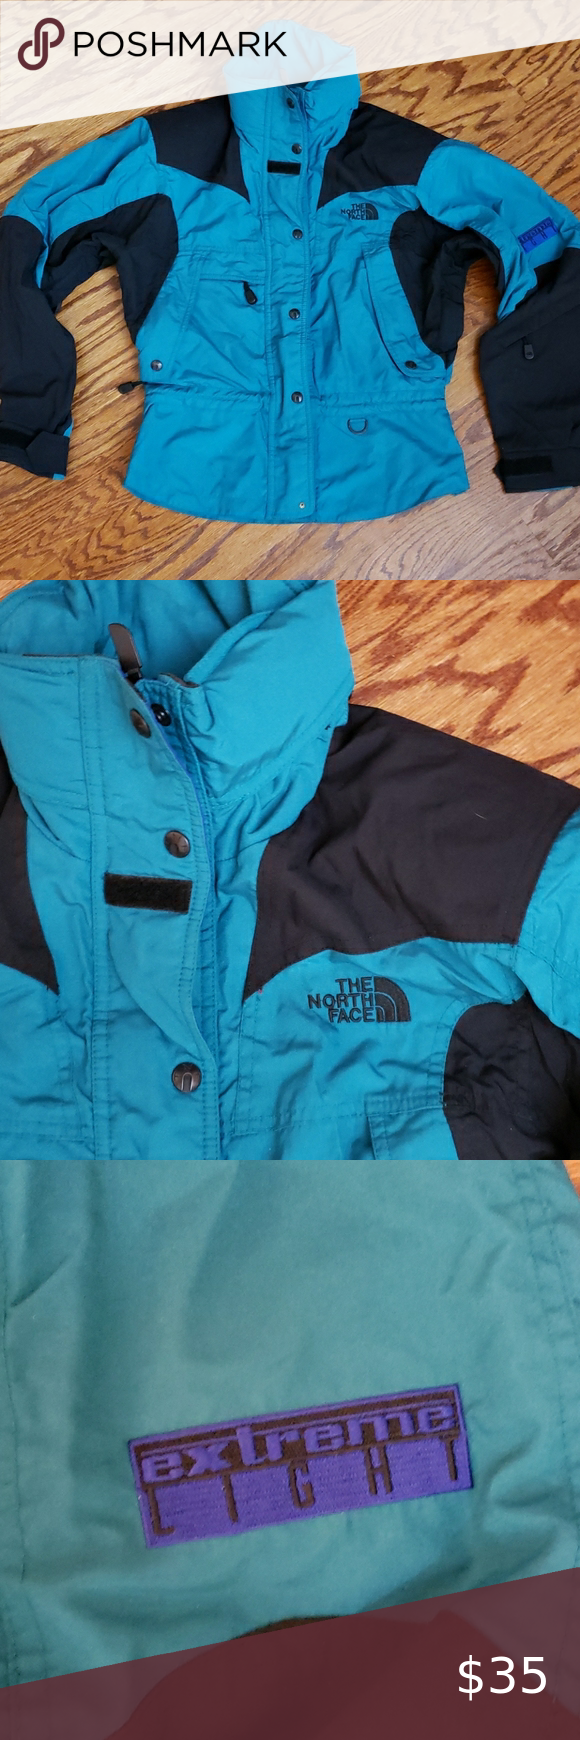 The North Face Women S Extreme Light Ski Jacket North Face Women Ski Jacket The North Face [ 1740 x 580 Pixel ]